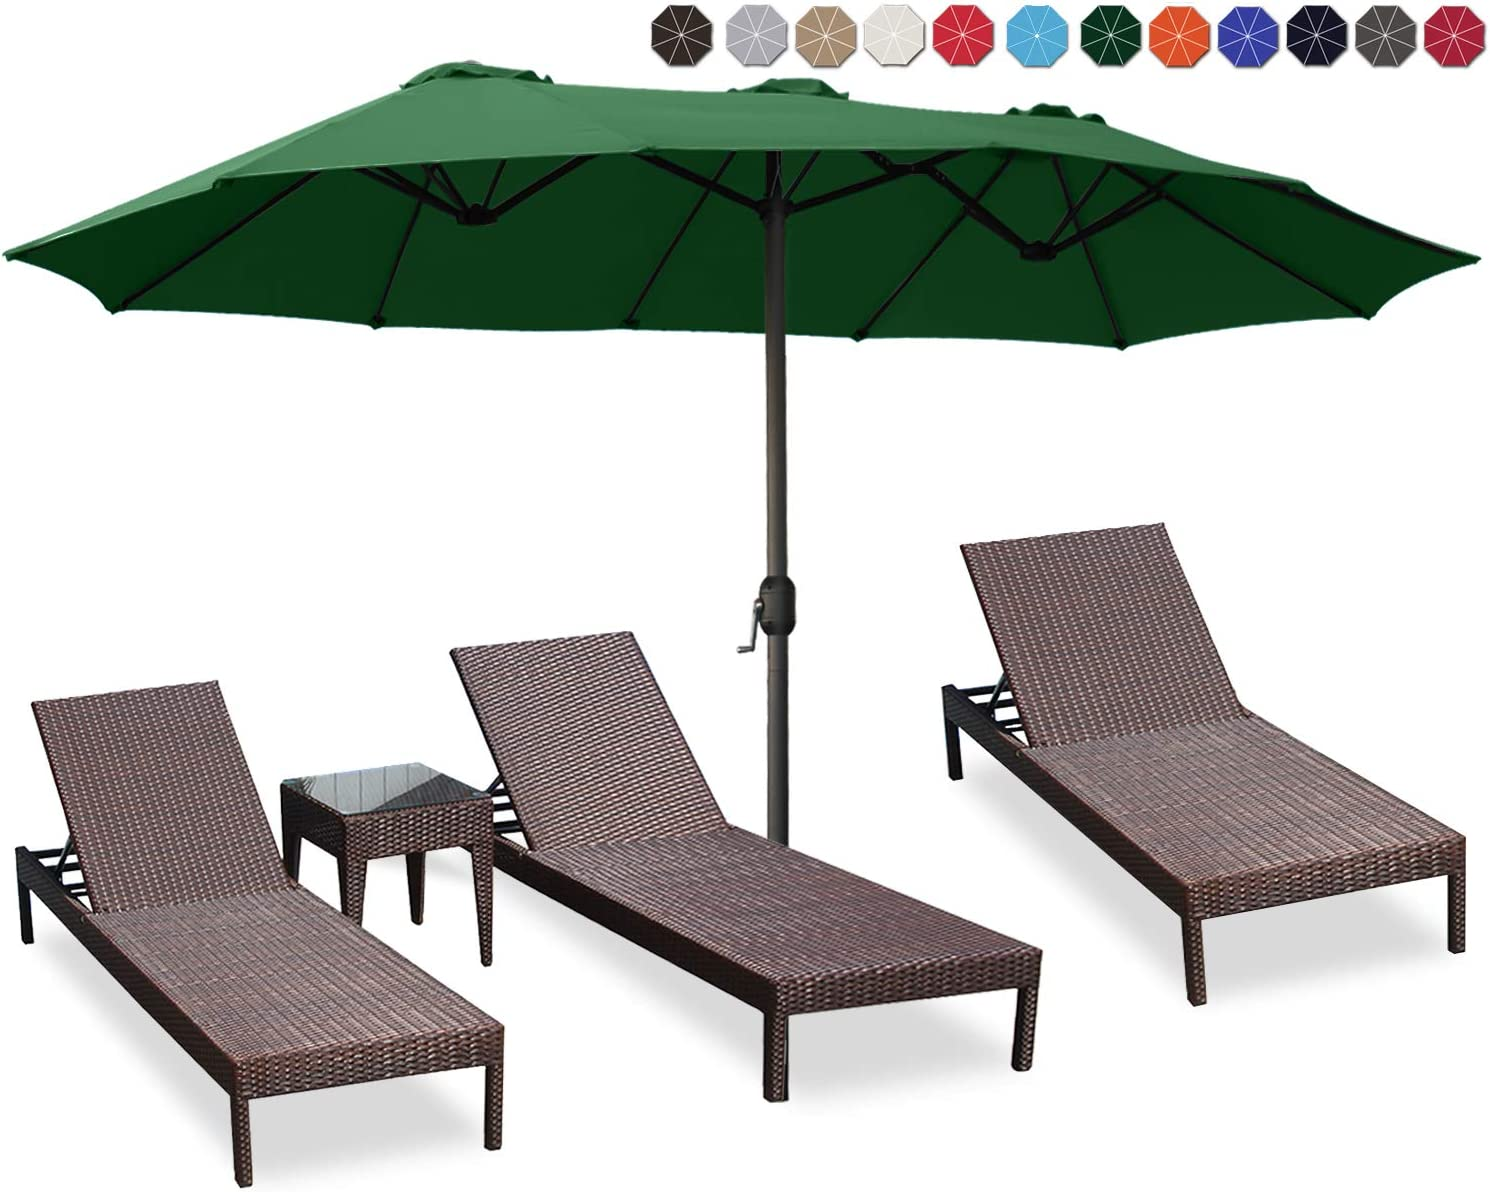 ABCCANOPY 15FT Double-Sided Aluminum Table Patio Umbrella Garden Large Umbrella,Swimming Pool 12+Colors,Forest Green